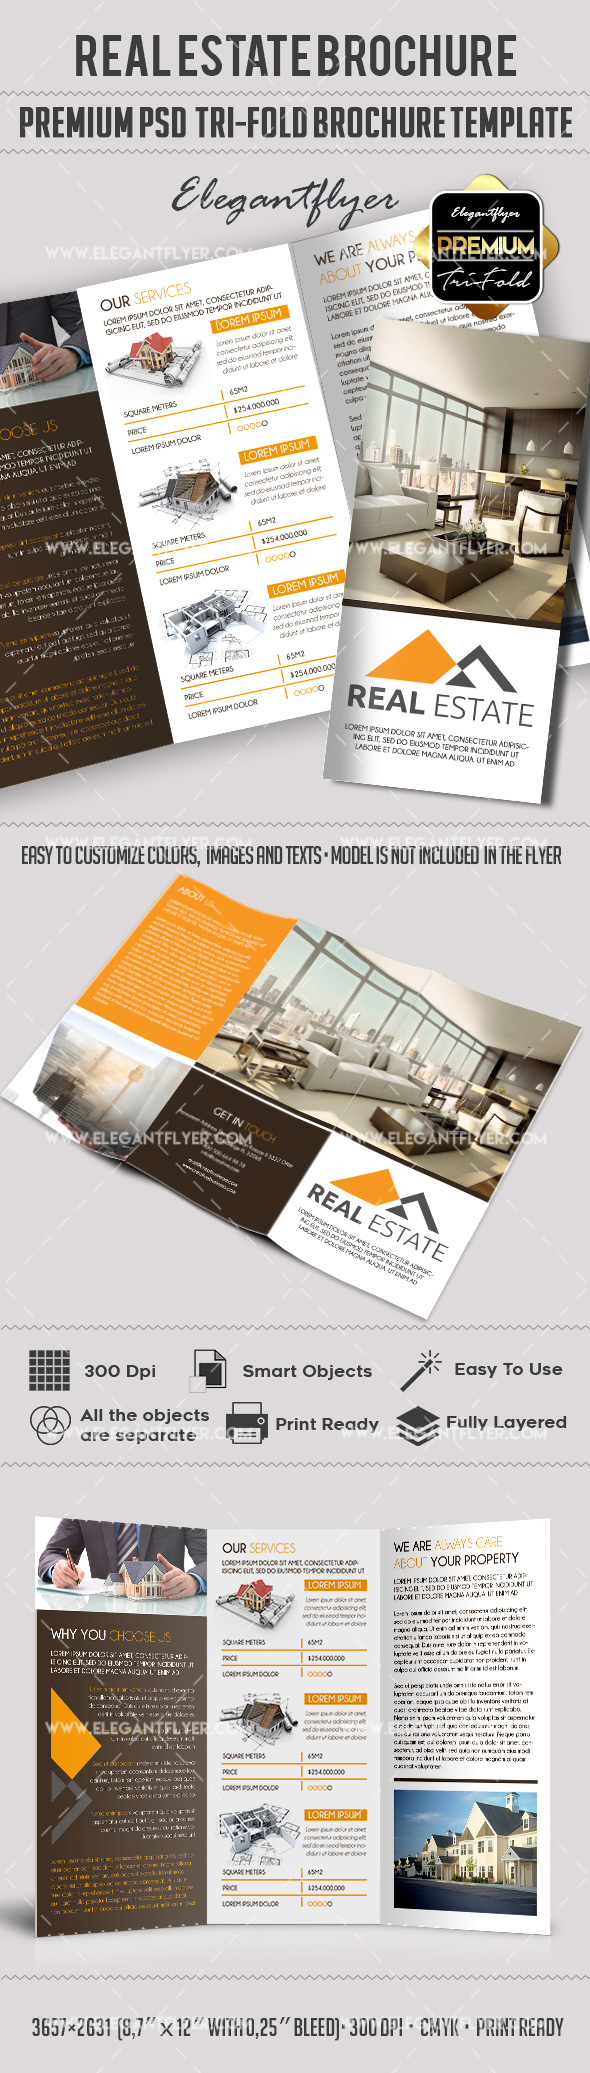 2 fold brochure template psd psd brochure for commercial real estate by elegantflyer